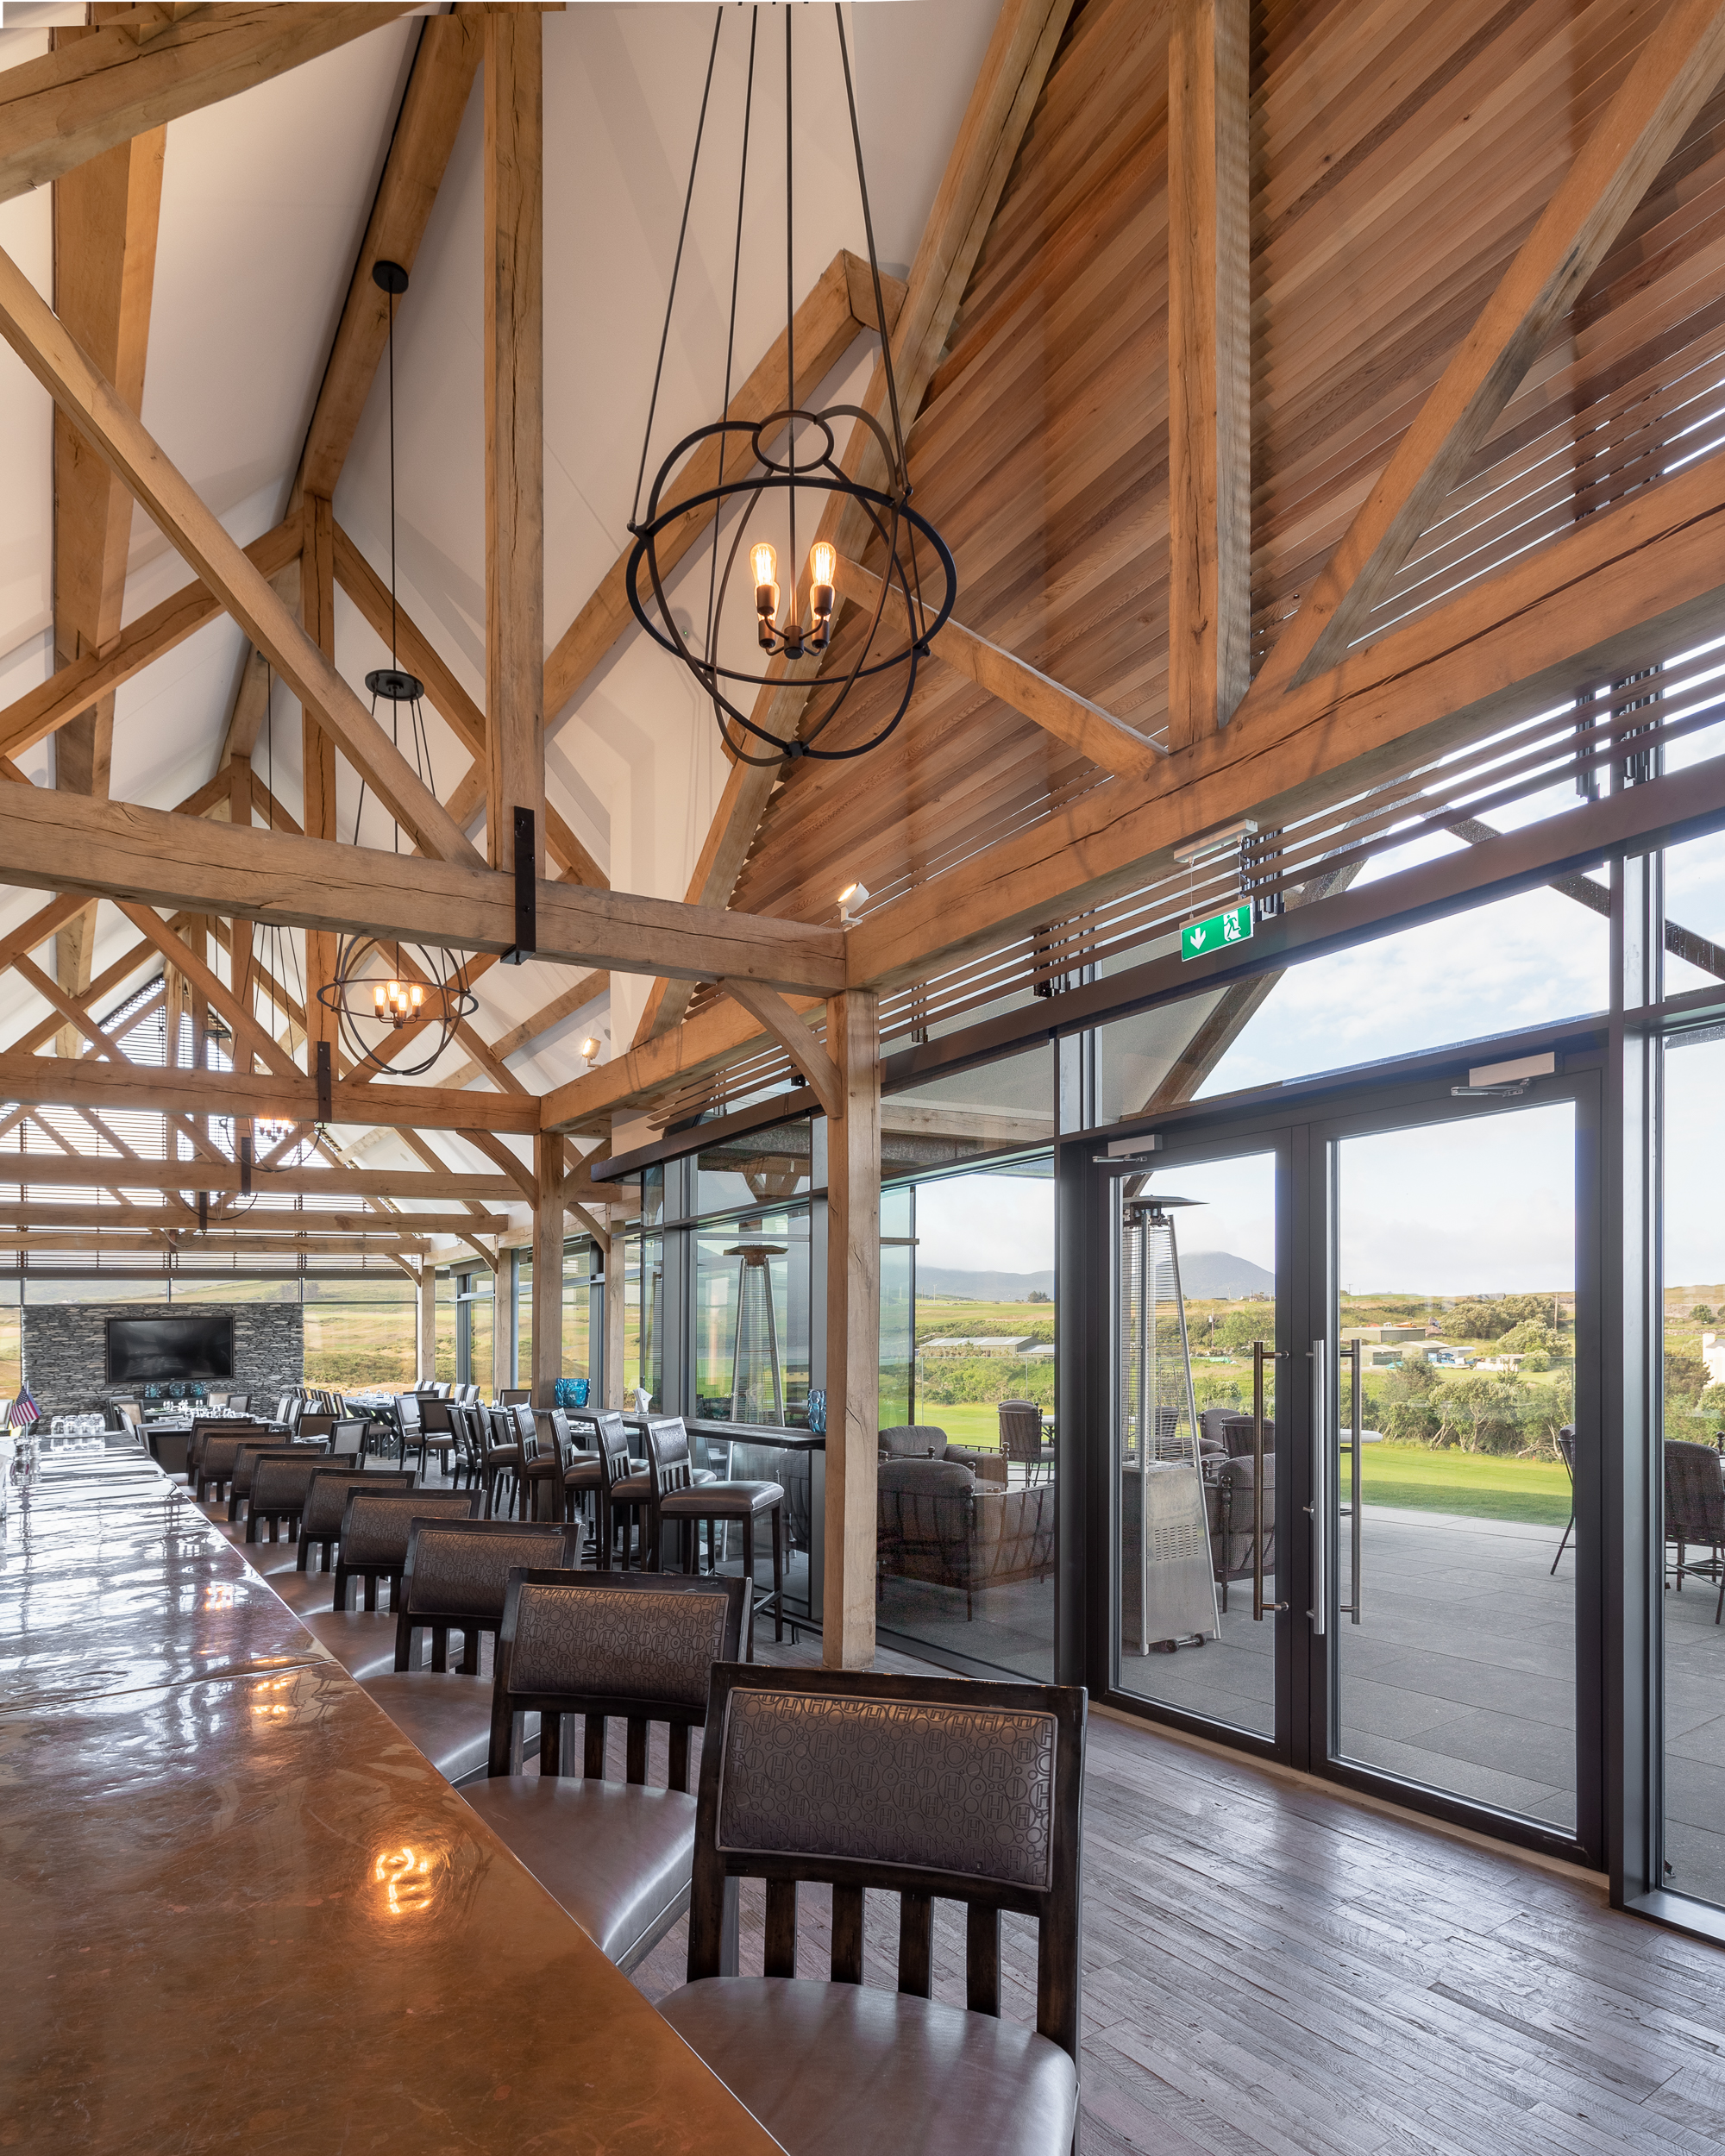 Glenfort Timber Engineering - Hog's Head Golf Club Clubhouse